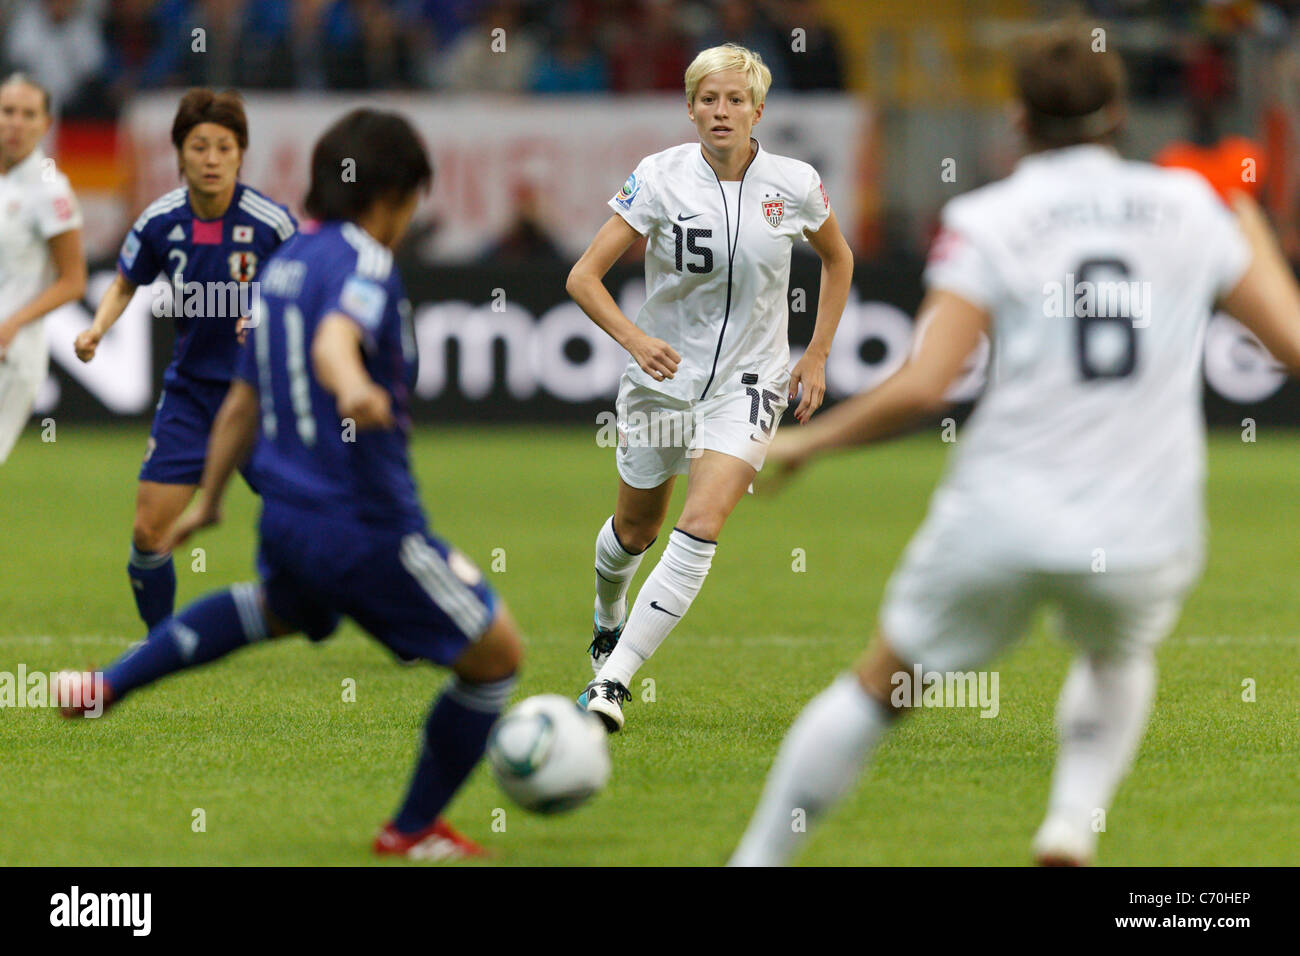 Megan Rapinoe of the USA (15) in action during the FIFA Women's World Cup final against Japan July 17, 2011. - Stock Image